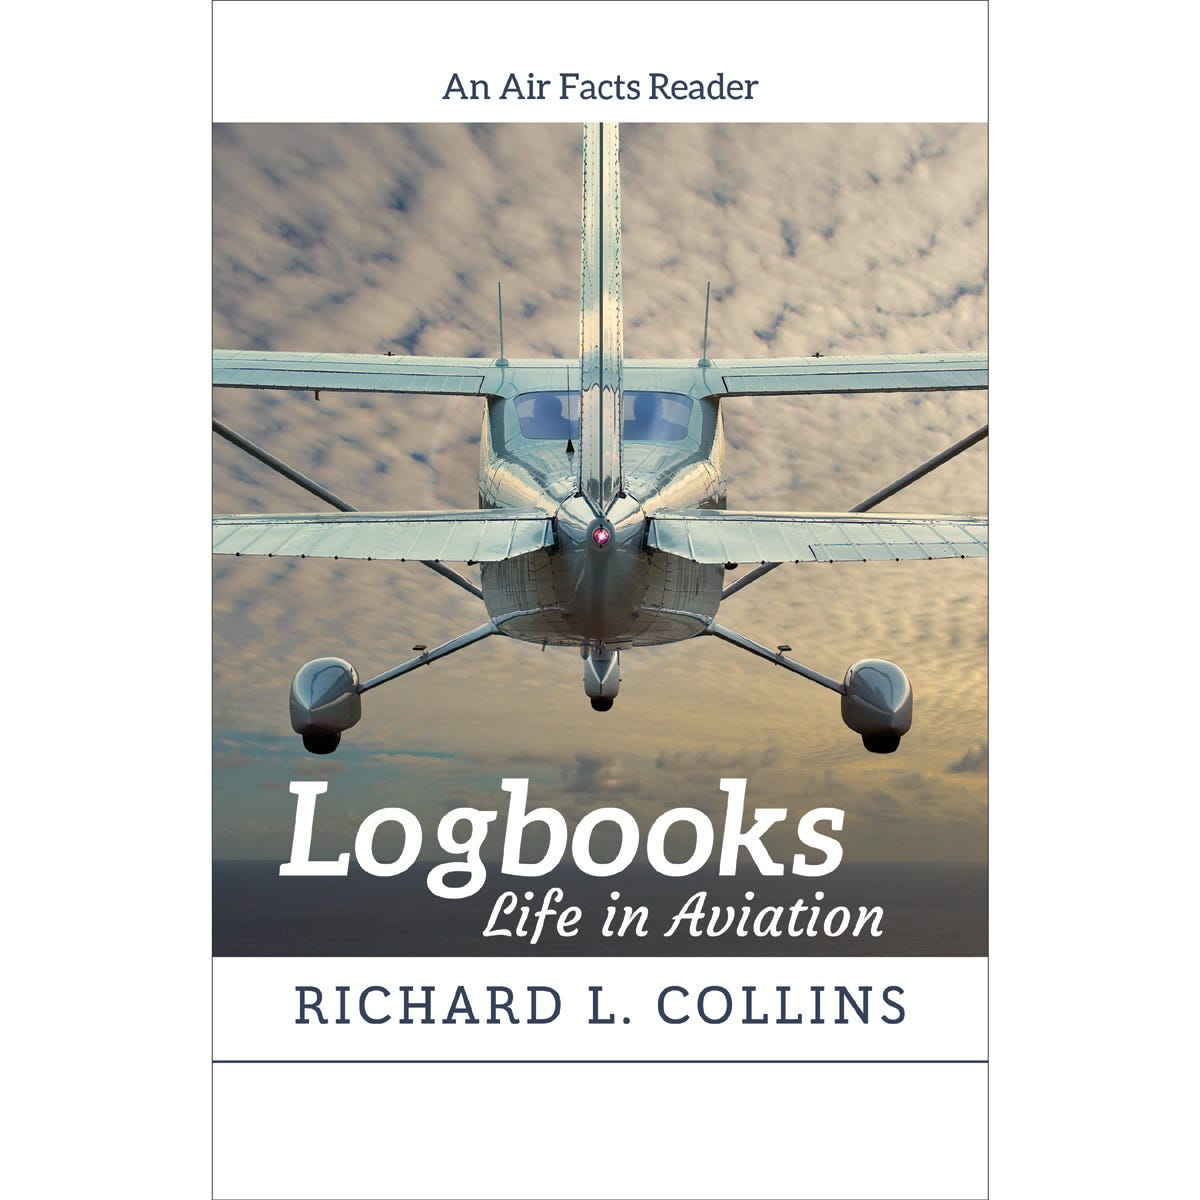 Logbooks, by Richard Collins